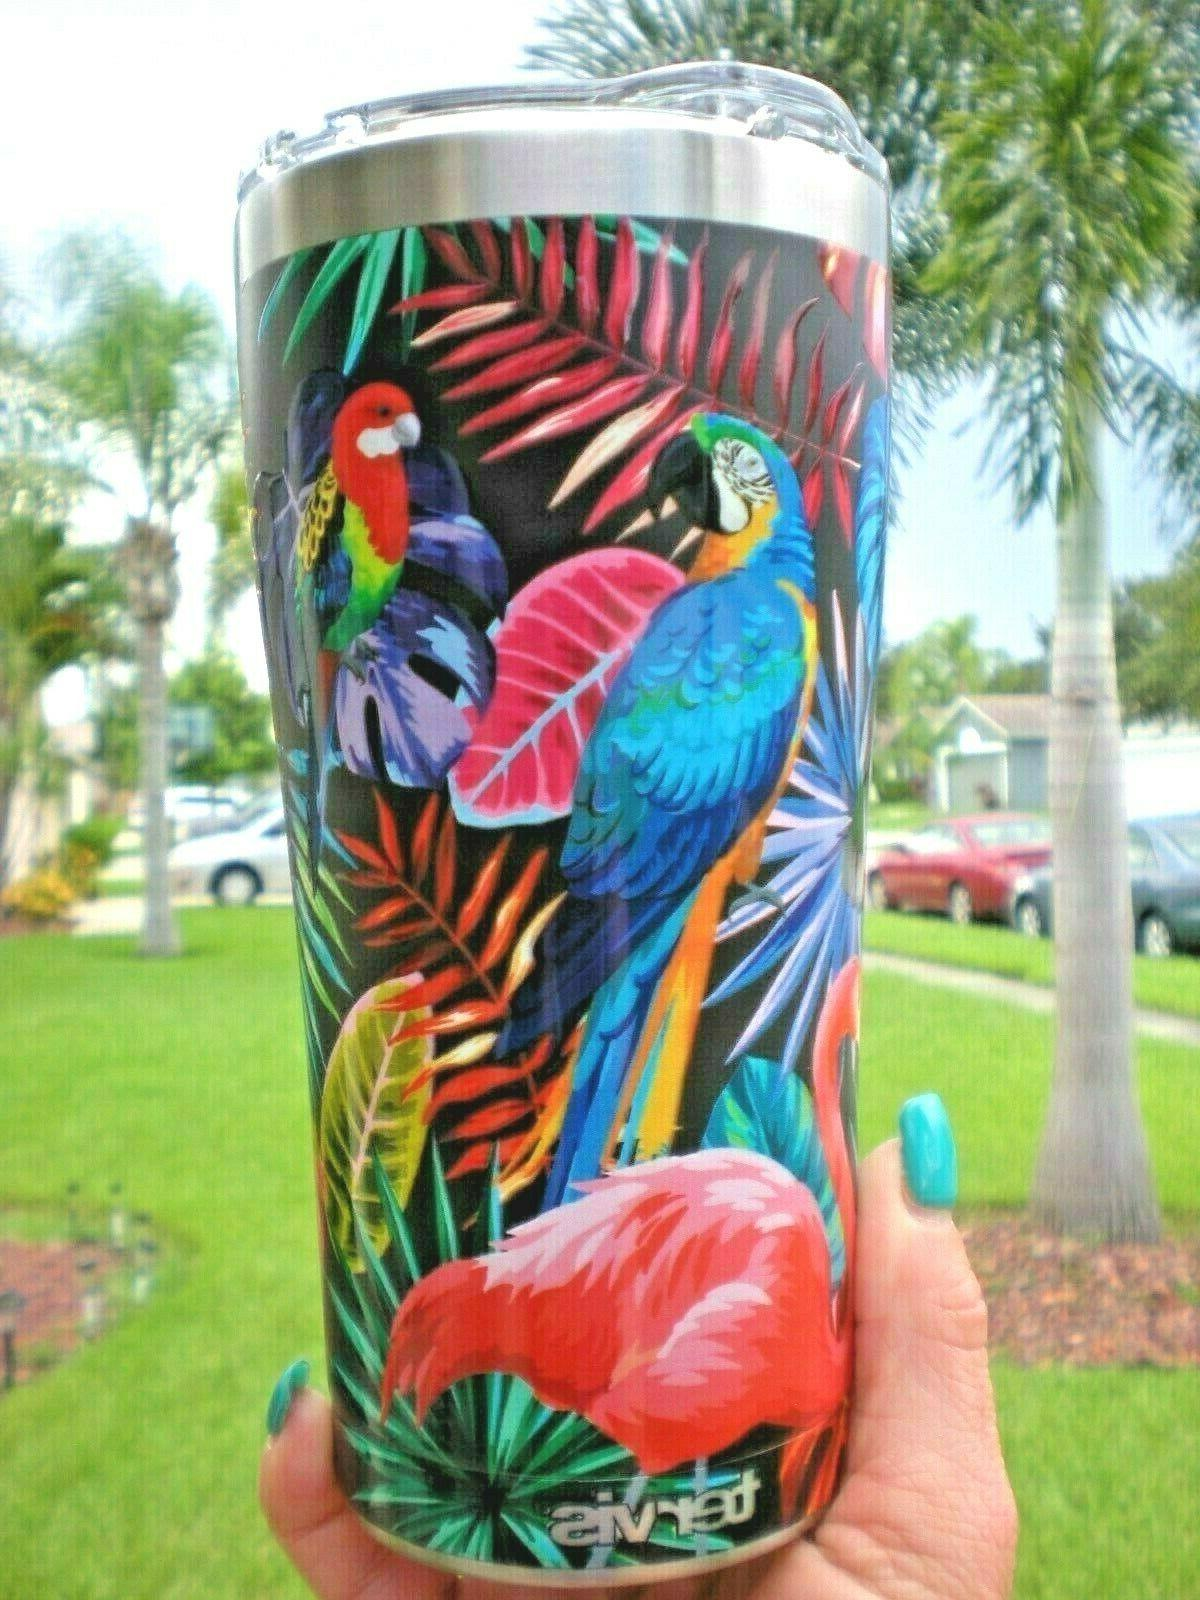 Tervis Tumbler Tropical Birds Stainless Steel 20 oz Tumbler